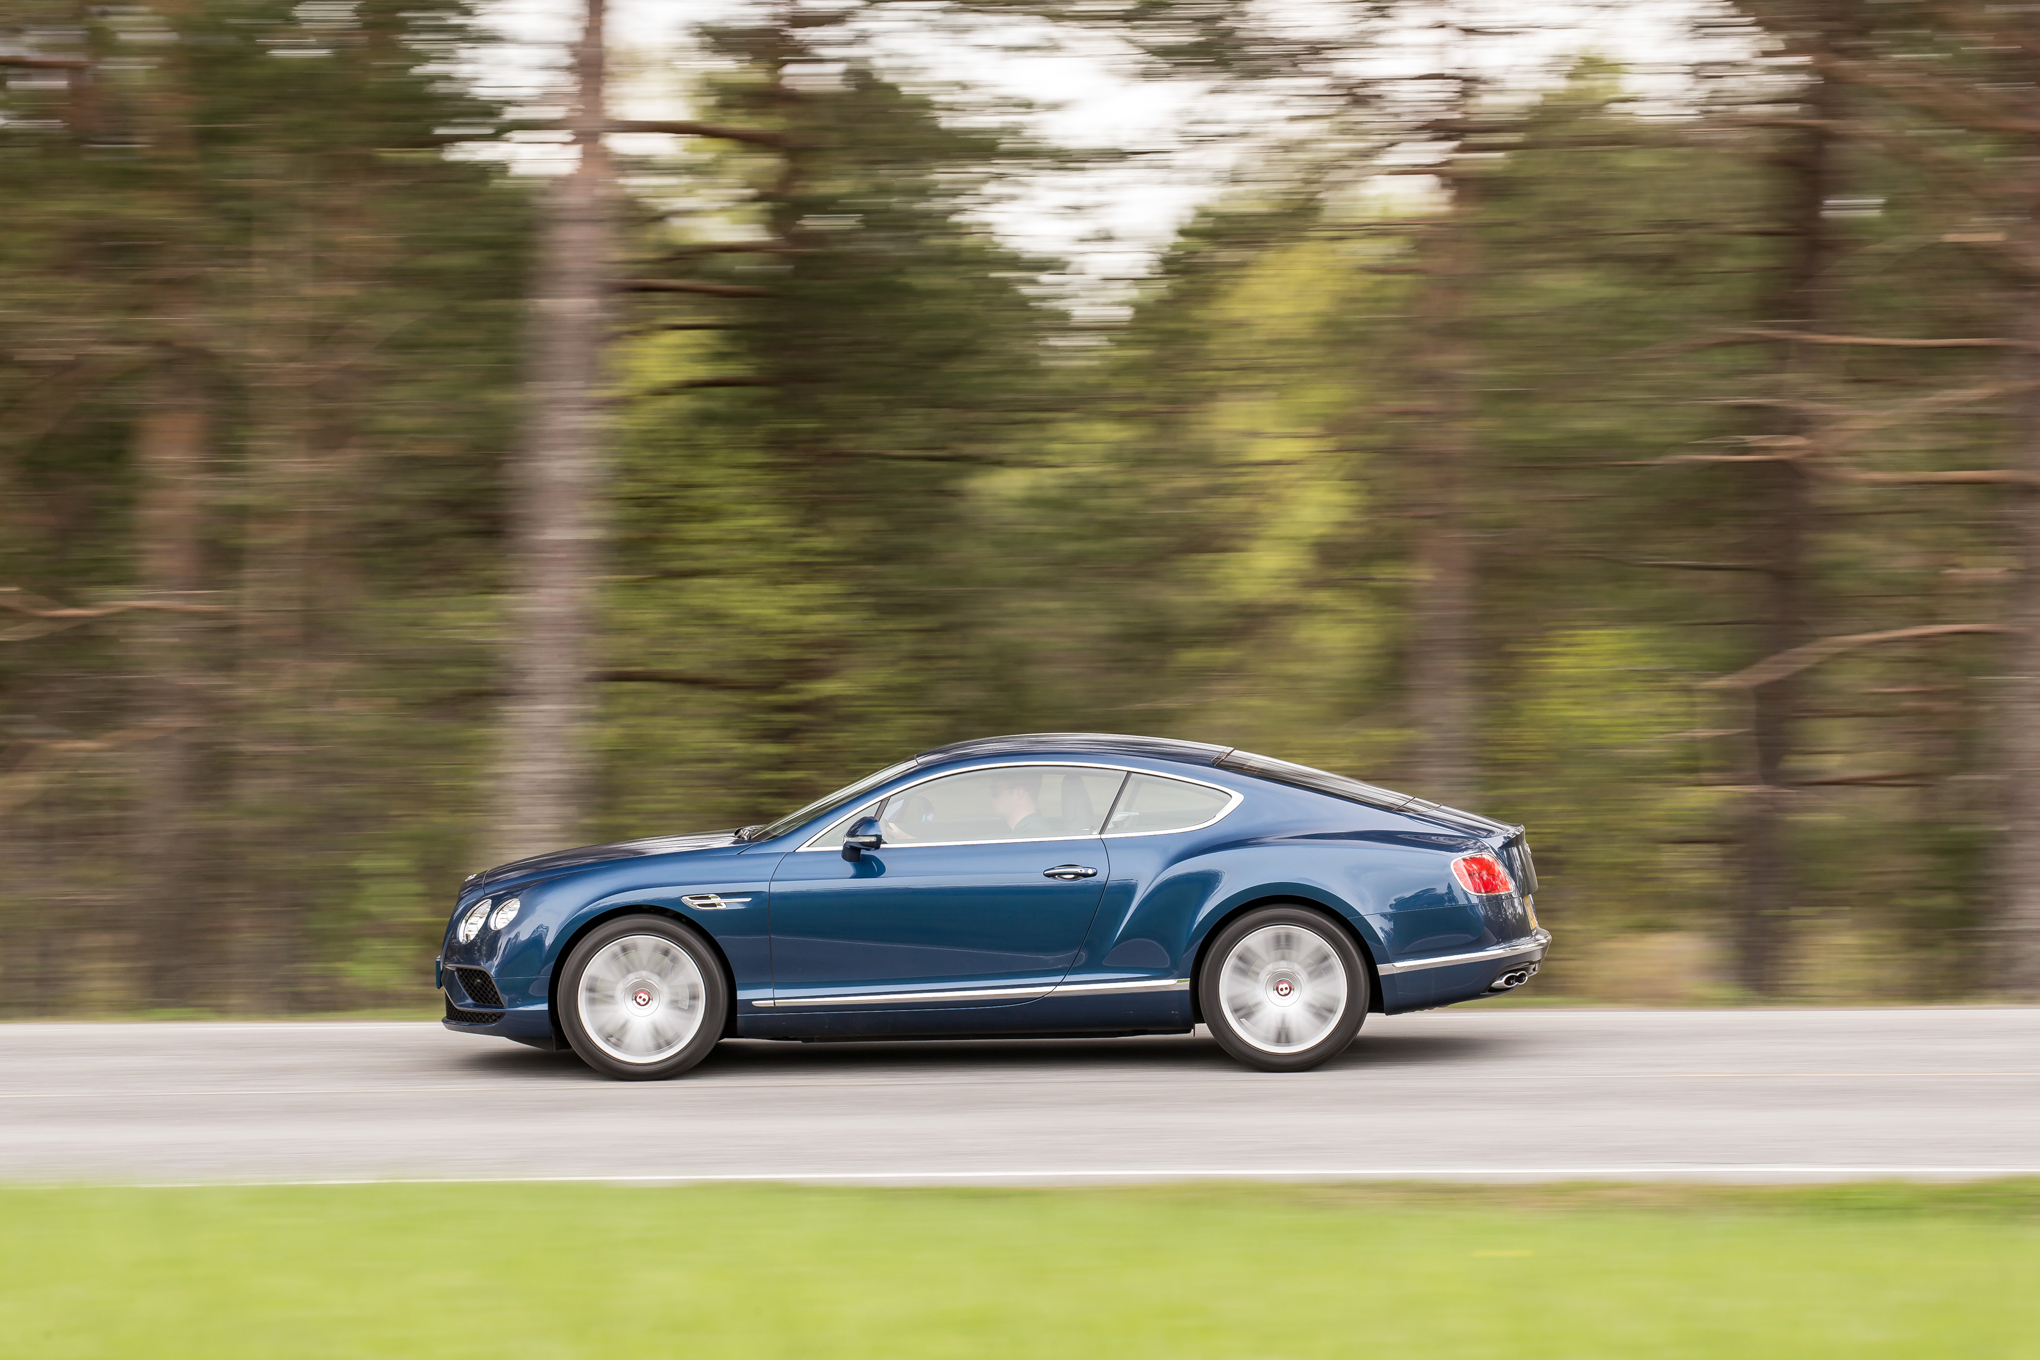 2019 Bentley Continental GT Prototype photo - 3